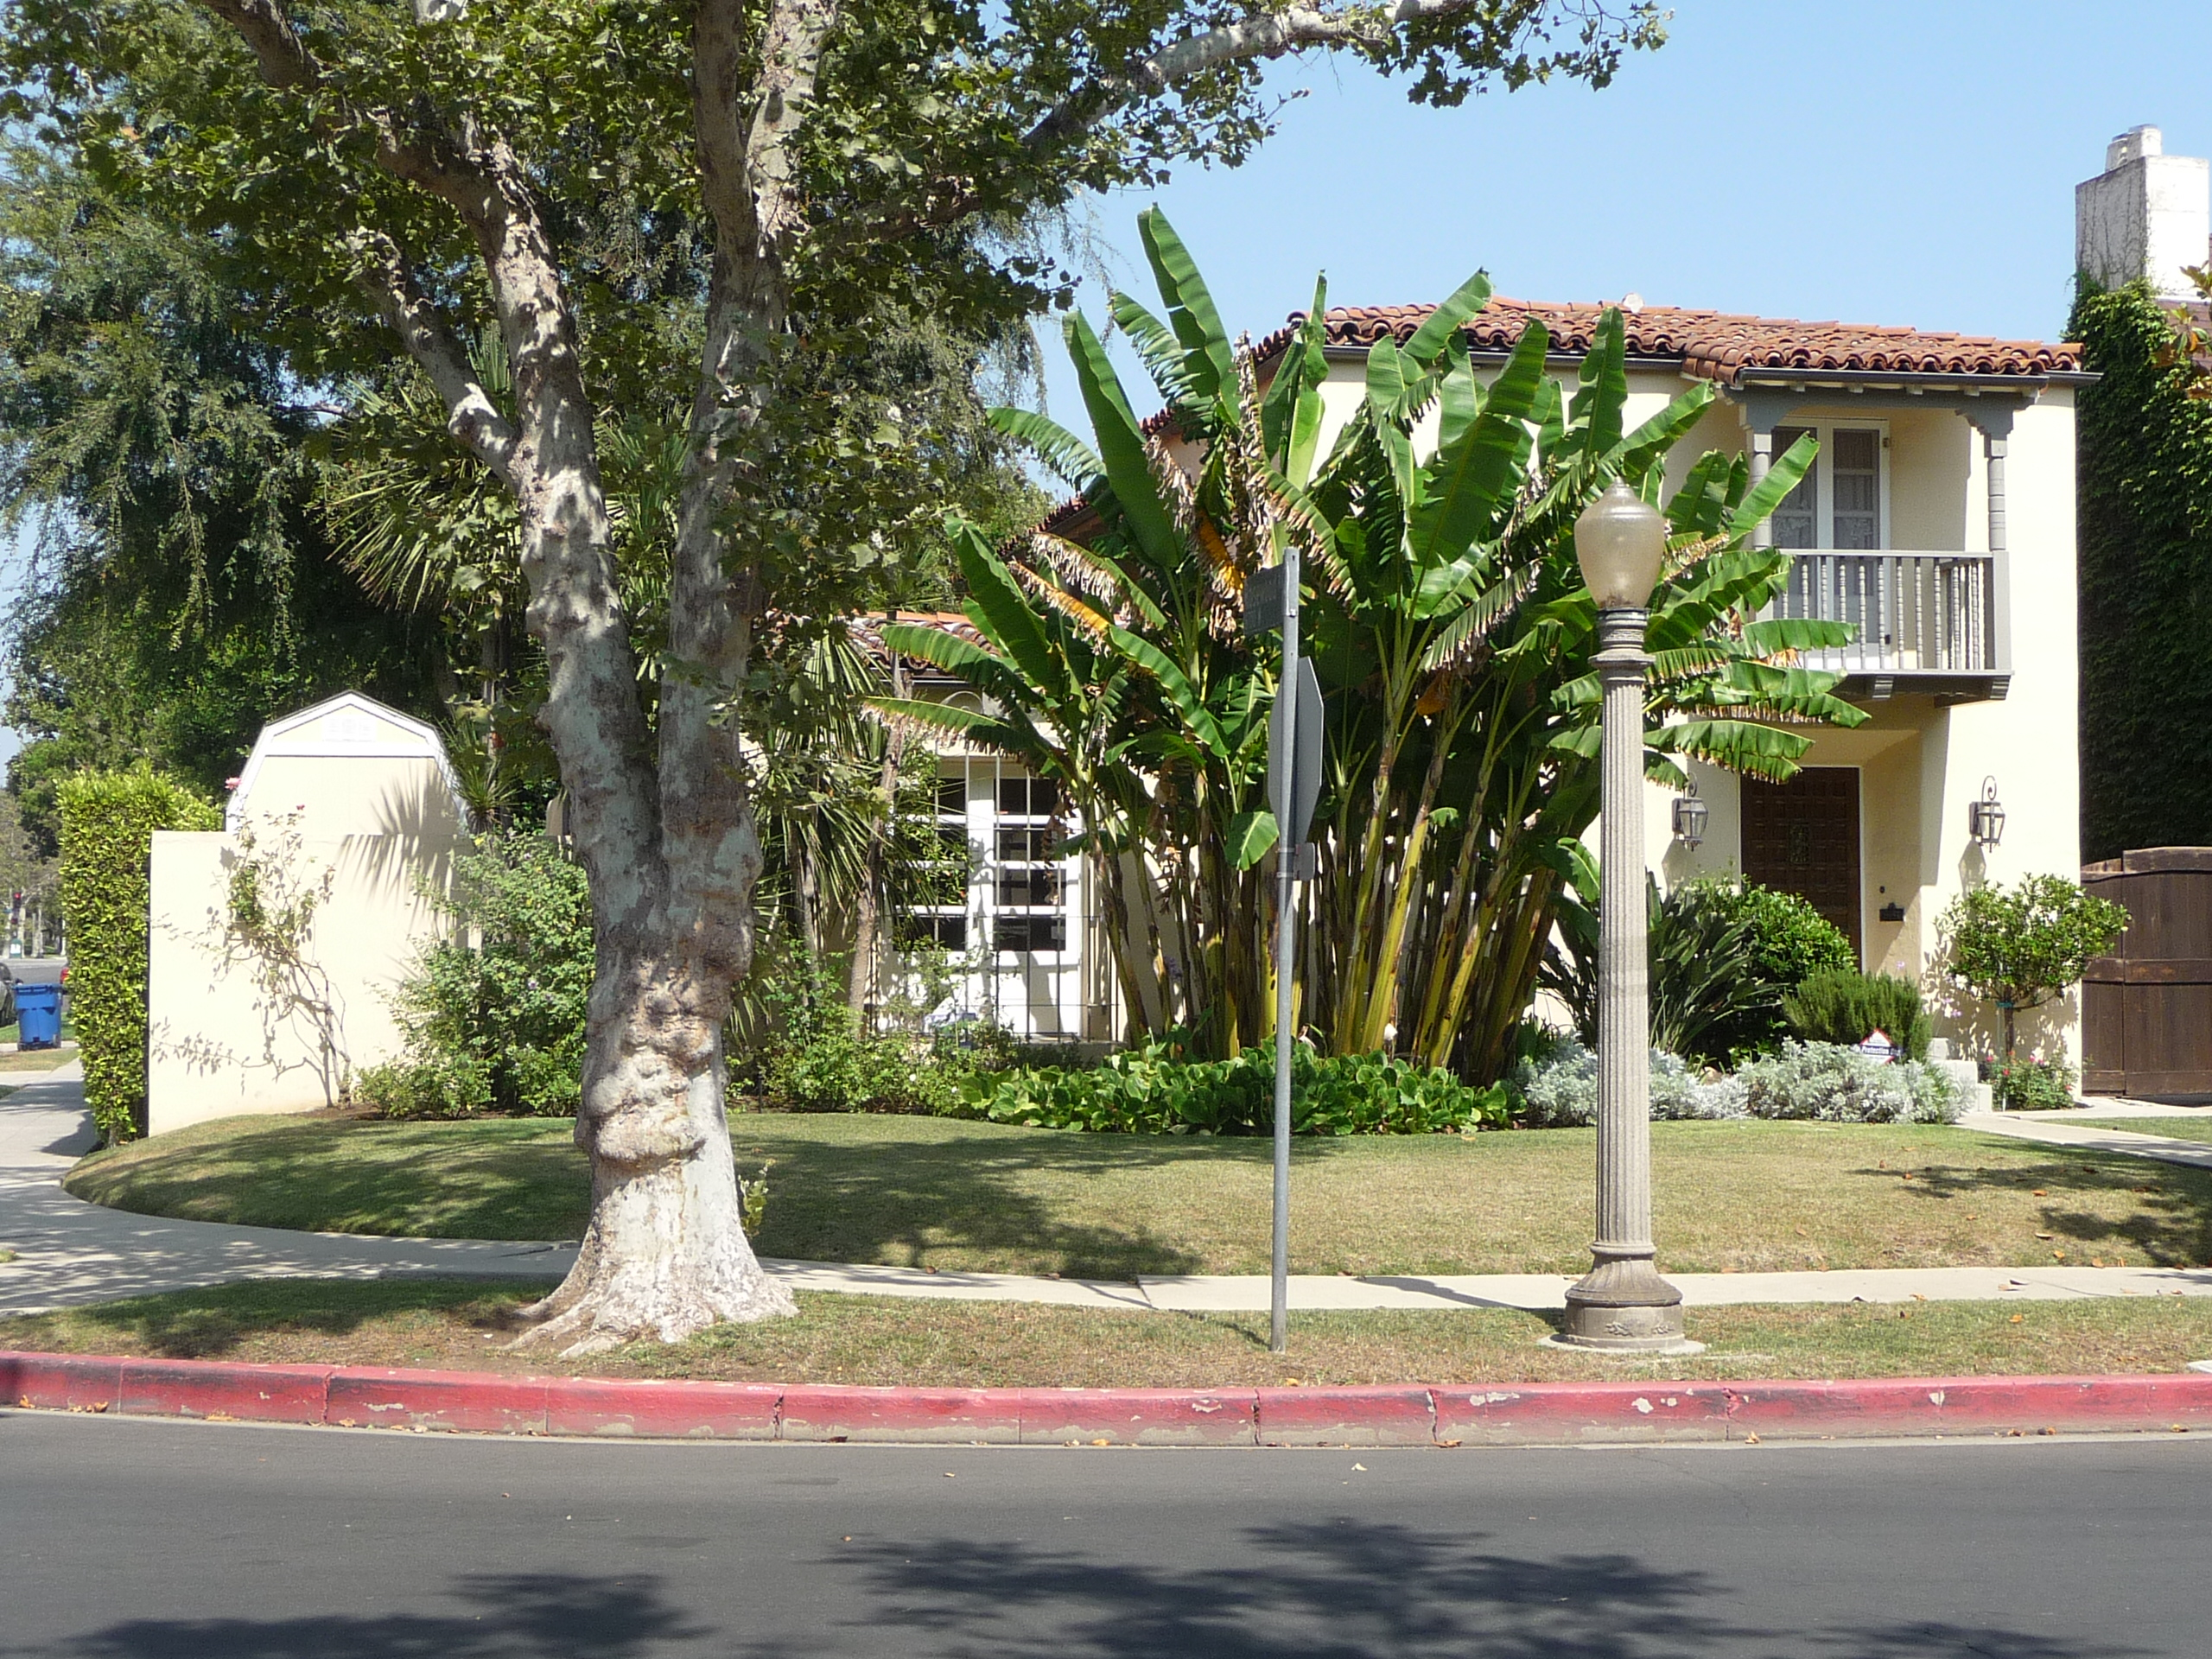 462 N MANSFIELD AVE - PHOTO